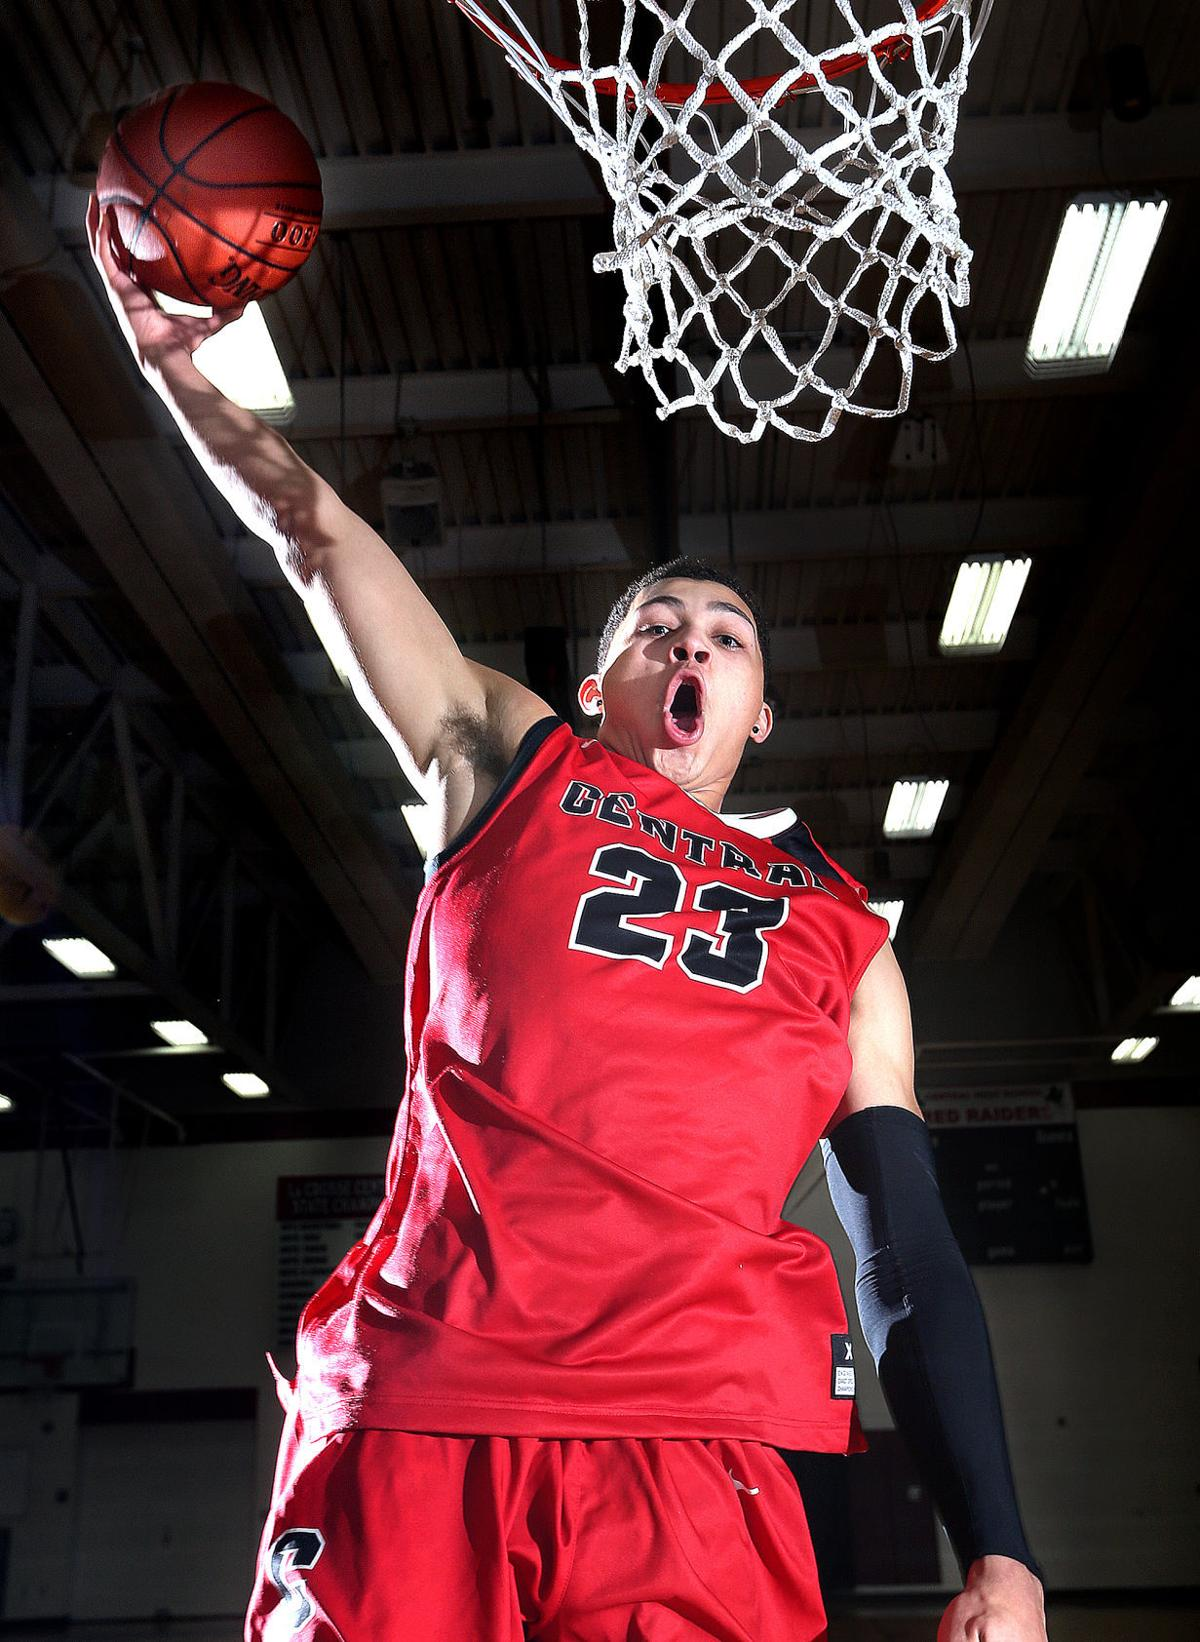 All-Tribune boys basketball: La Crosse Central's Kobe King named player of the year